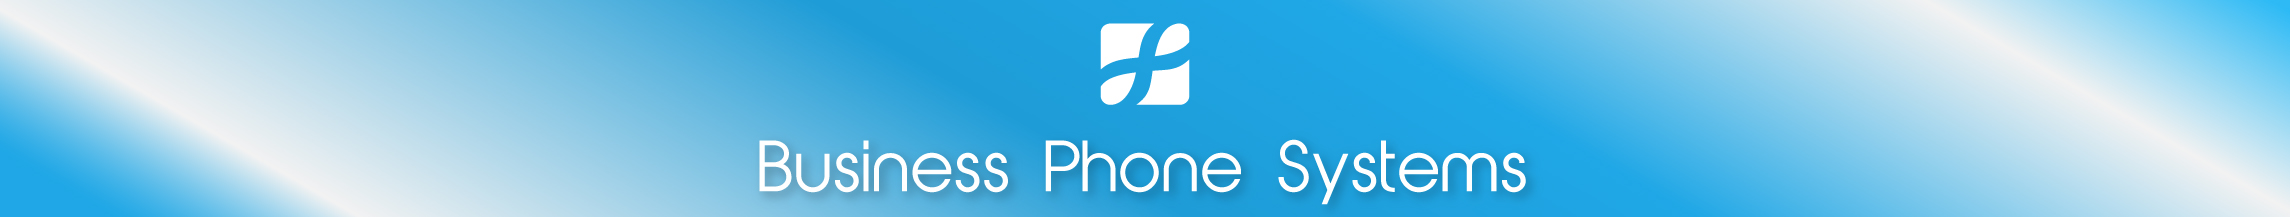 Business Phone Systems Banner